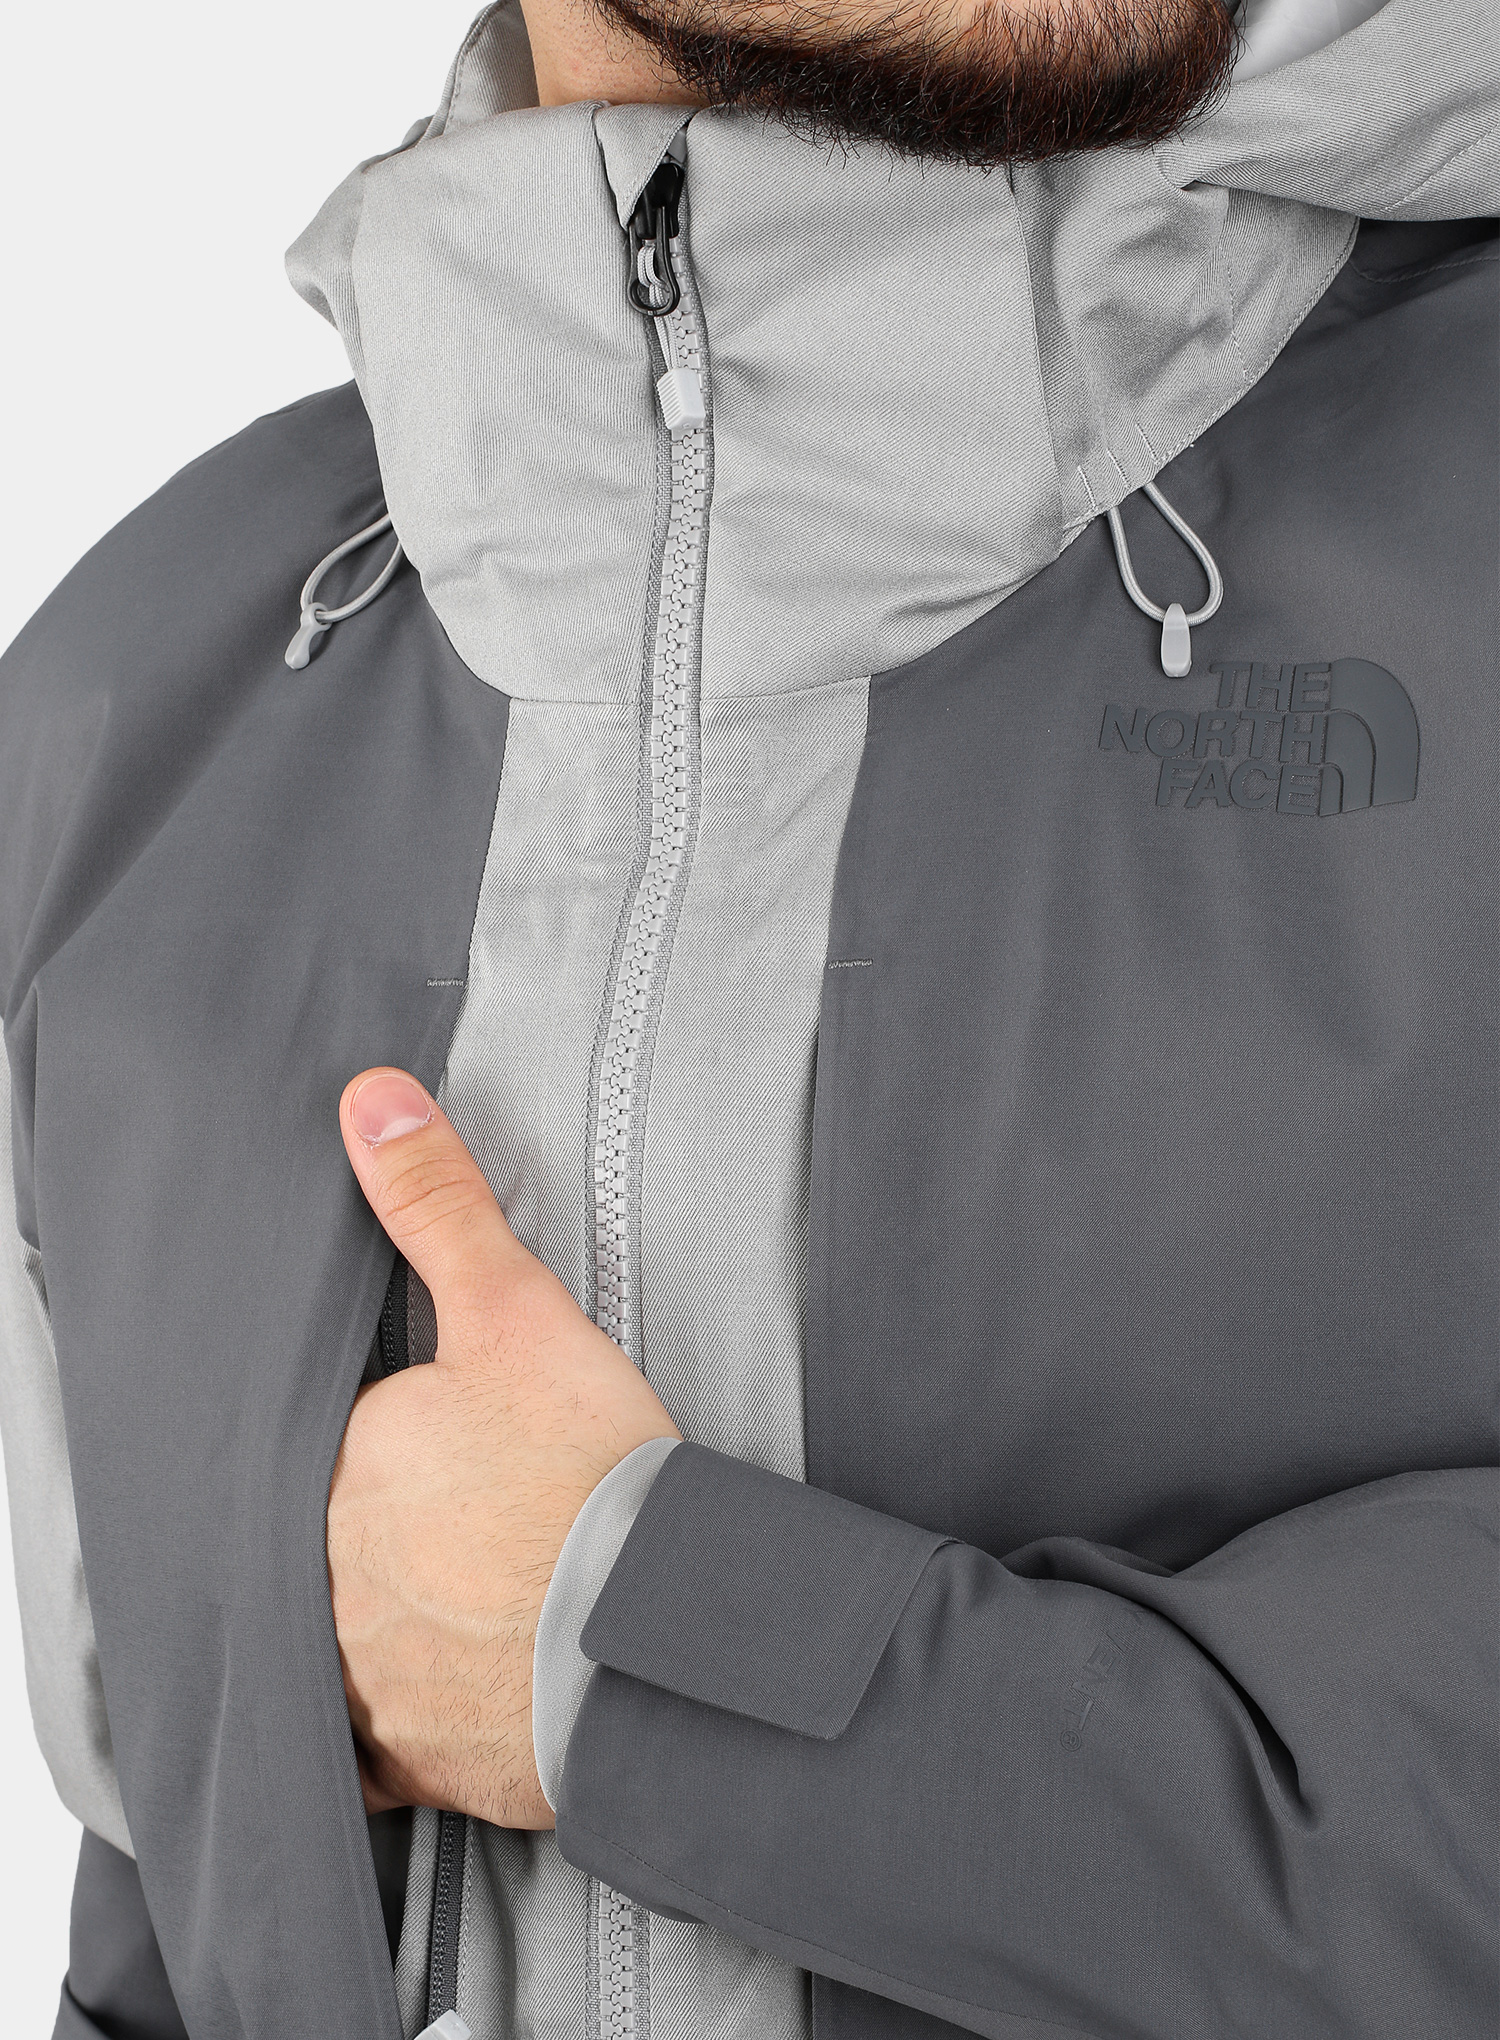 Kurtka The North Face Chakal Jacket - meld grey/vanadis grey - zdjęcie nr. 12